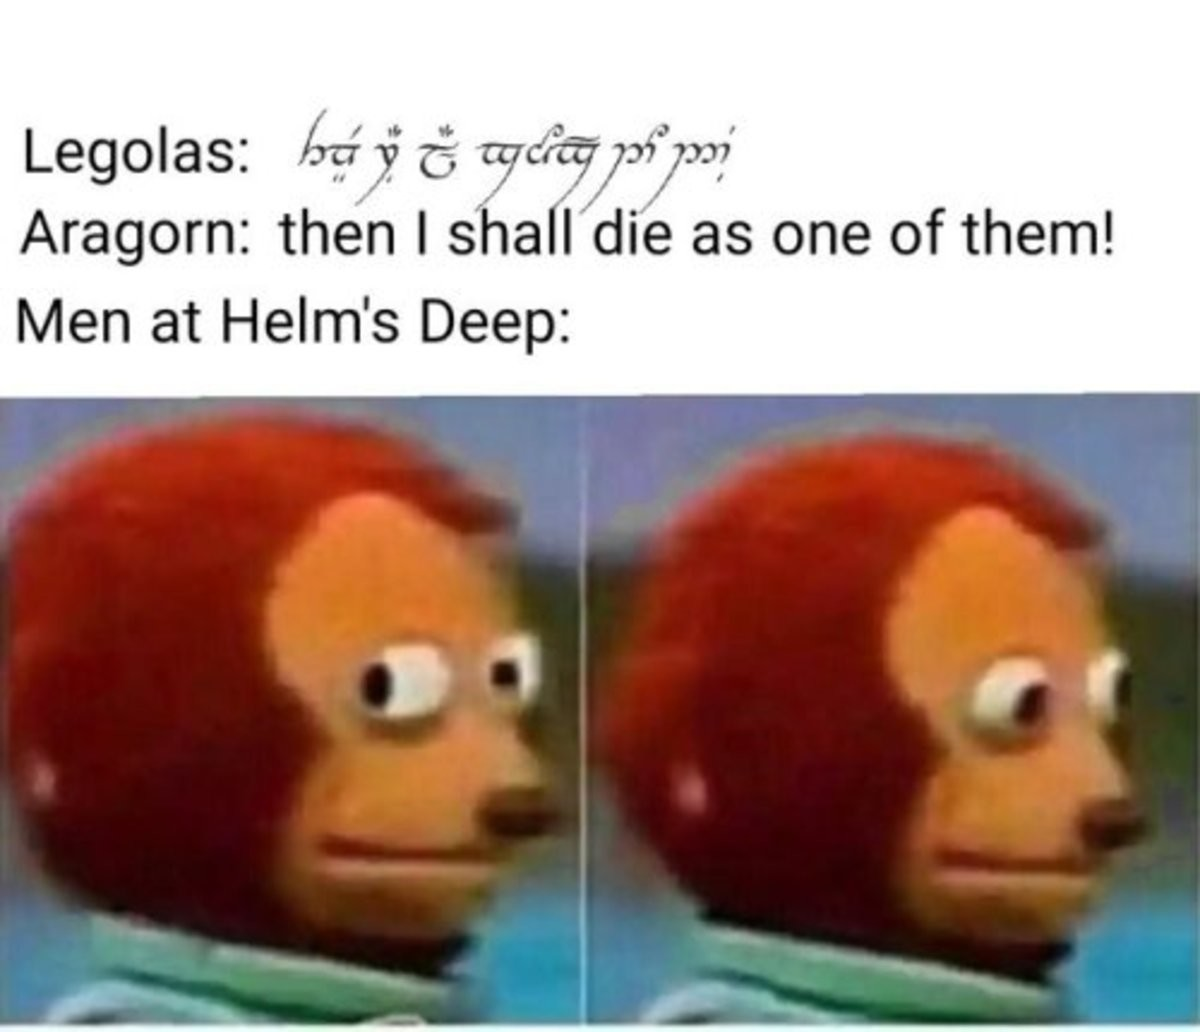 absurd flippant Ostrich. .. Every soldier there already knew what their chances were, which is why Legolas commented on how miserable they looked just before that line.